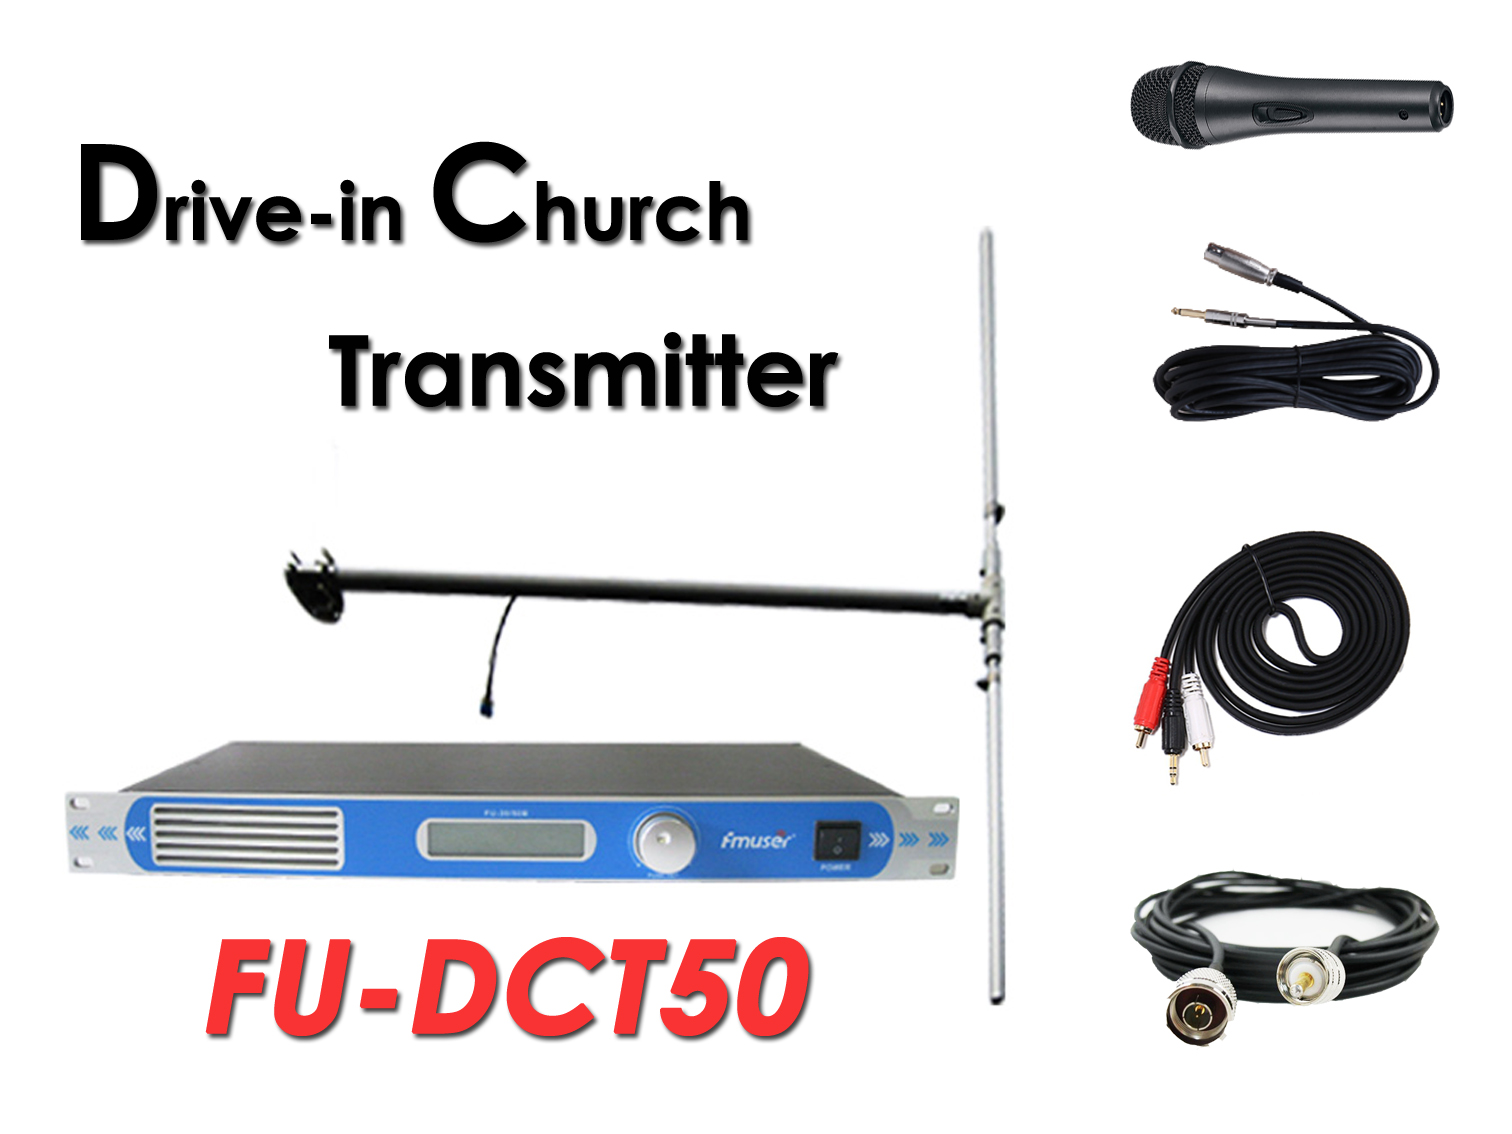 En gros Amazon FMUSER FU-DCT50 ​​50Watt Transmetteur FM + Antenne Dipôle DP100 + Câble + Microphone Set Pour Drive-in Church Service / Cinéma / Parking